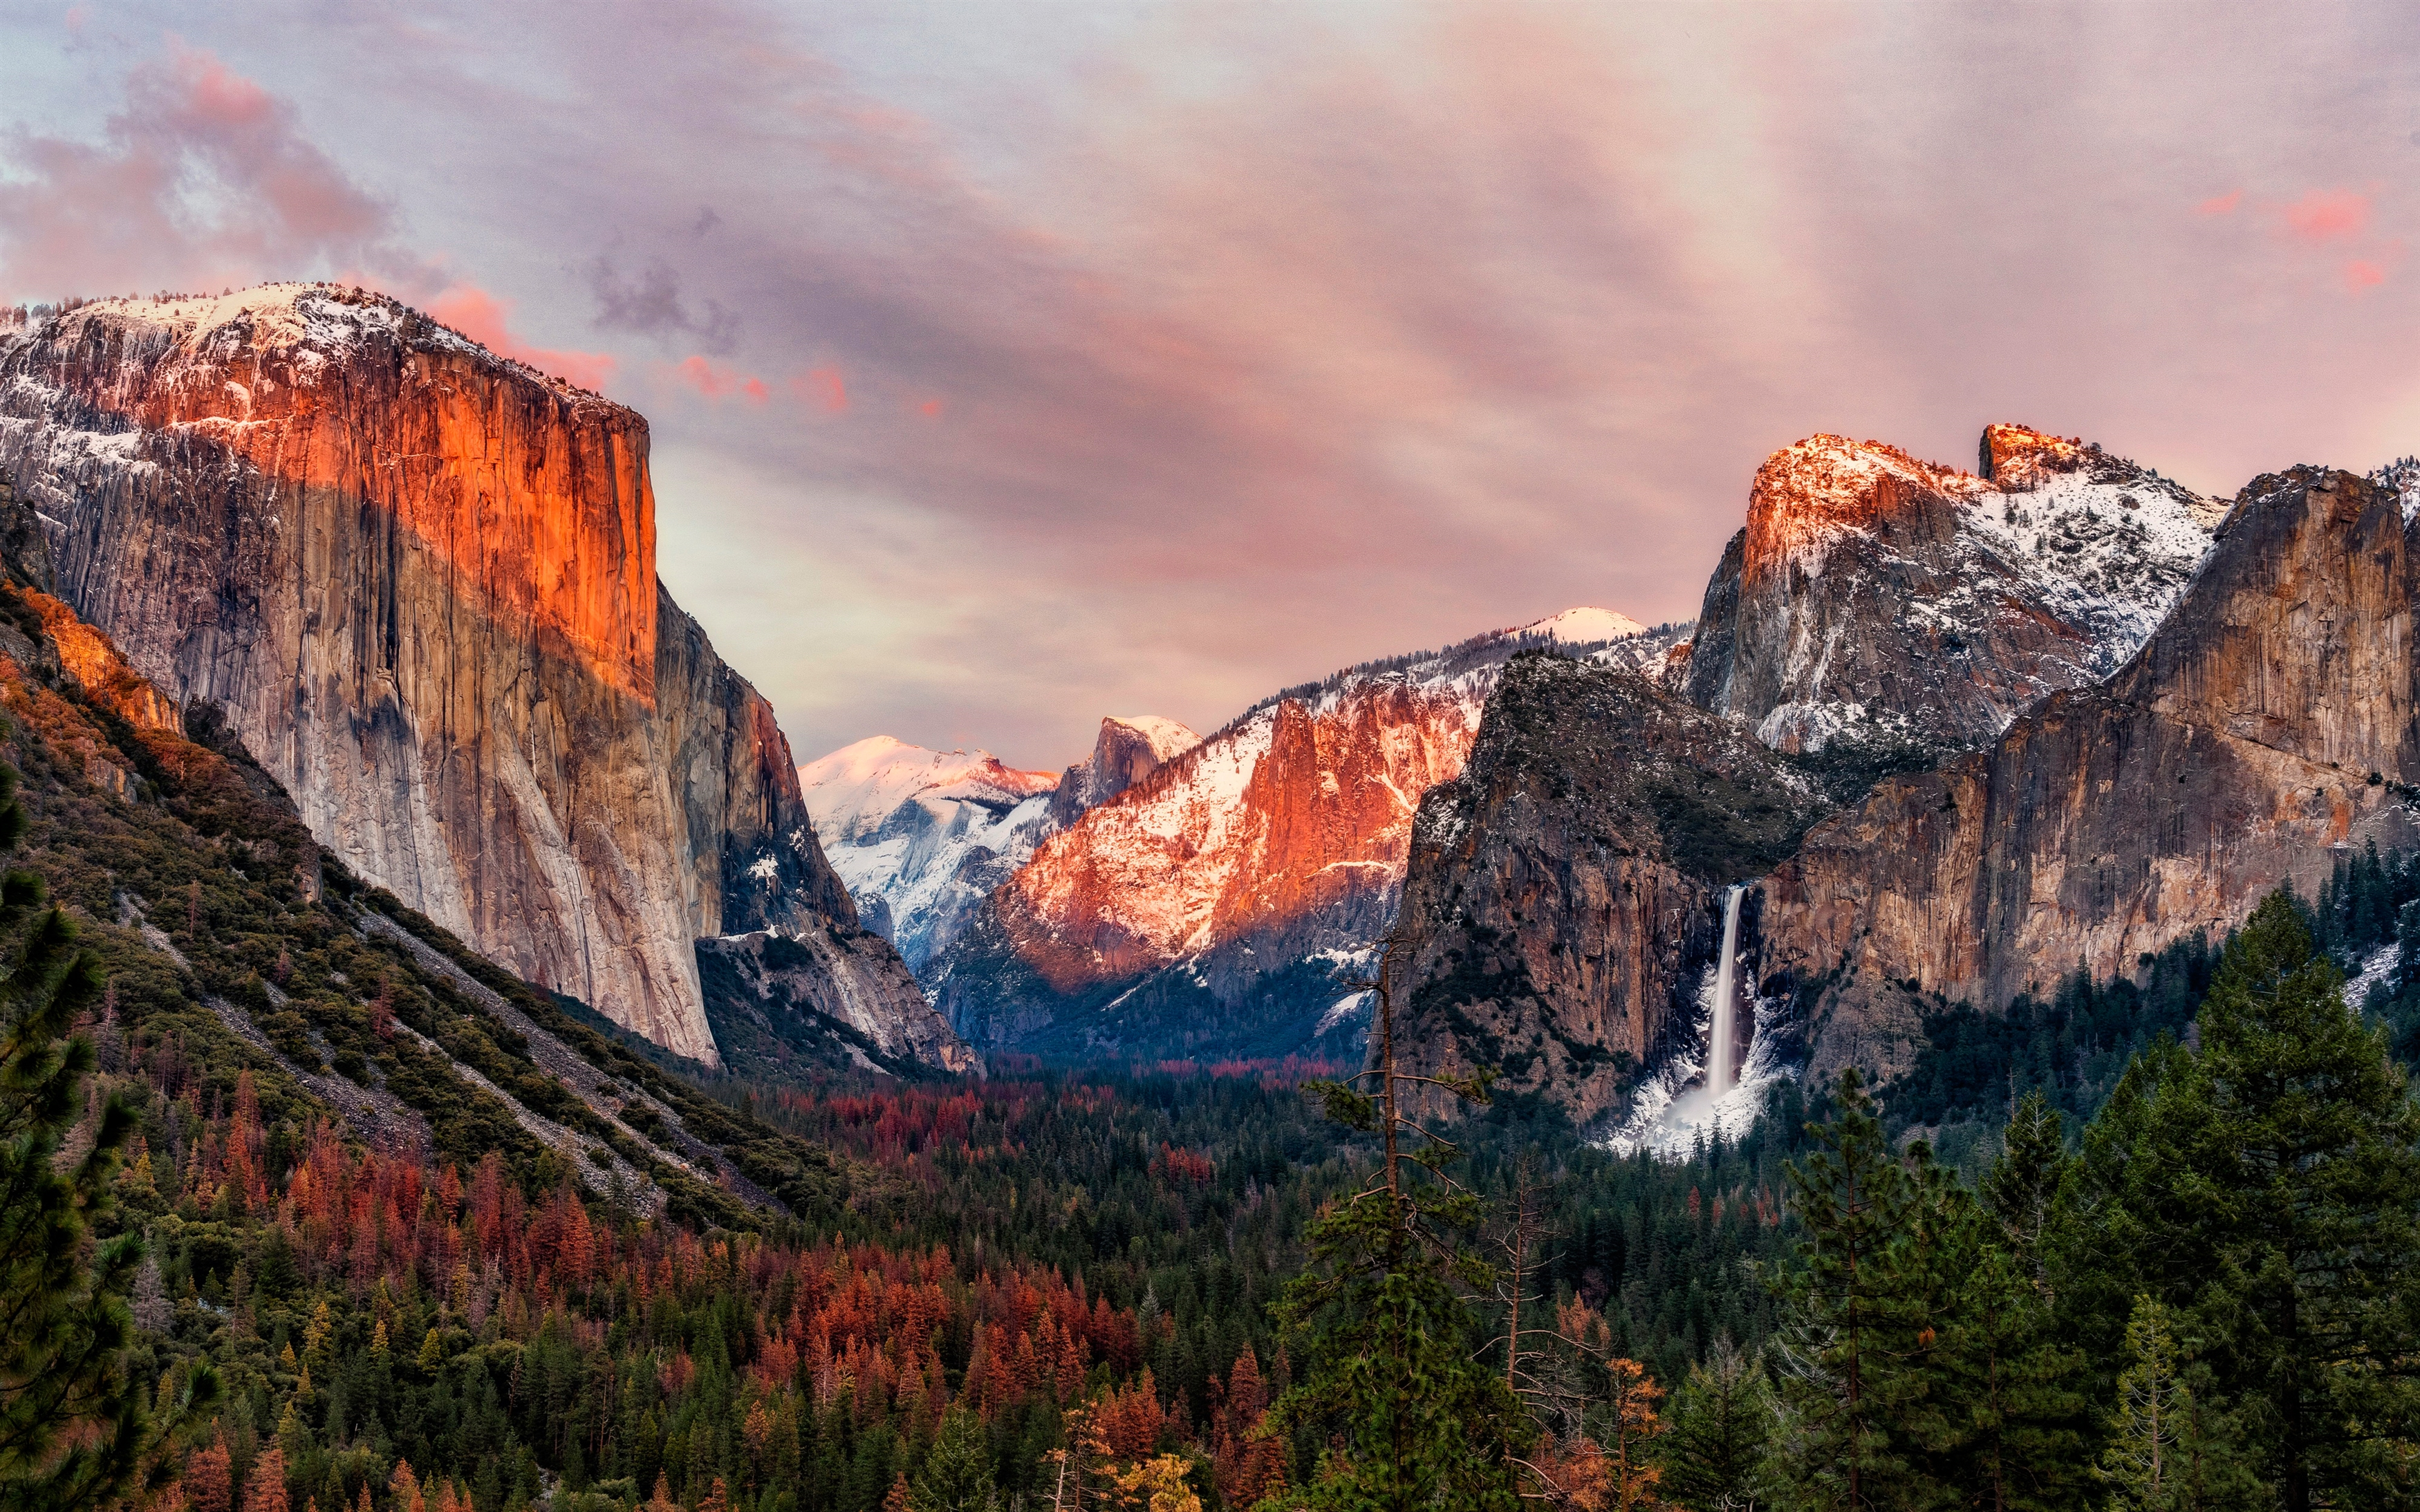 El capitan yosemite valley. обои скачать